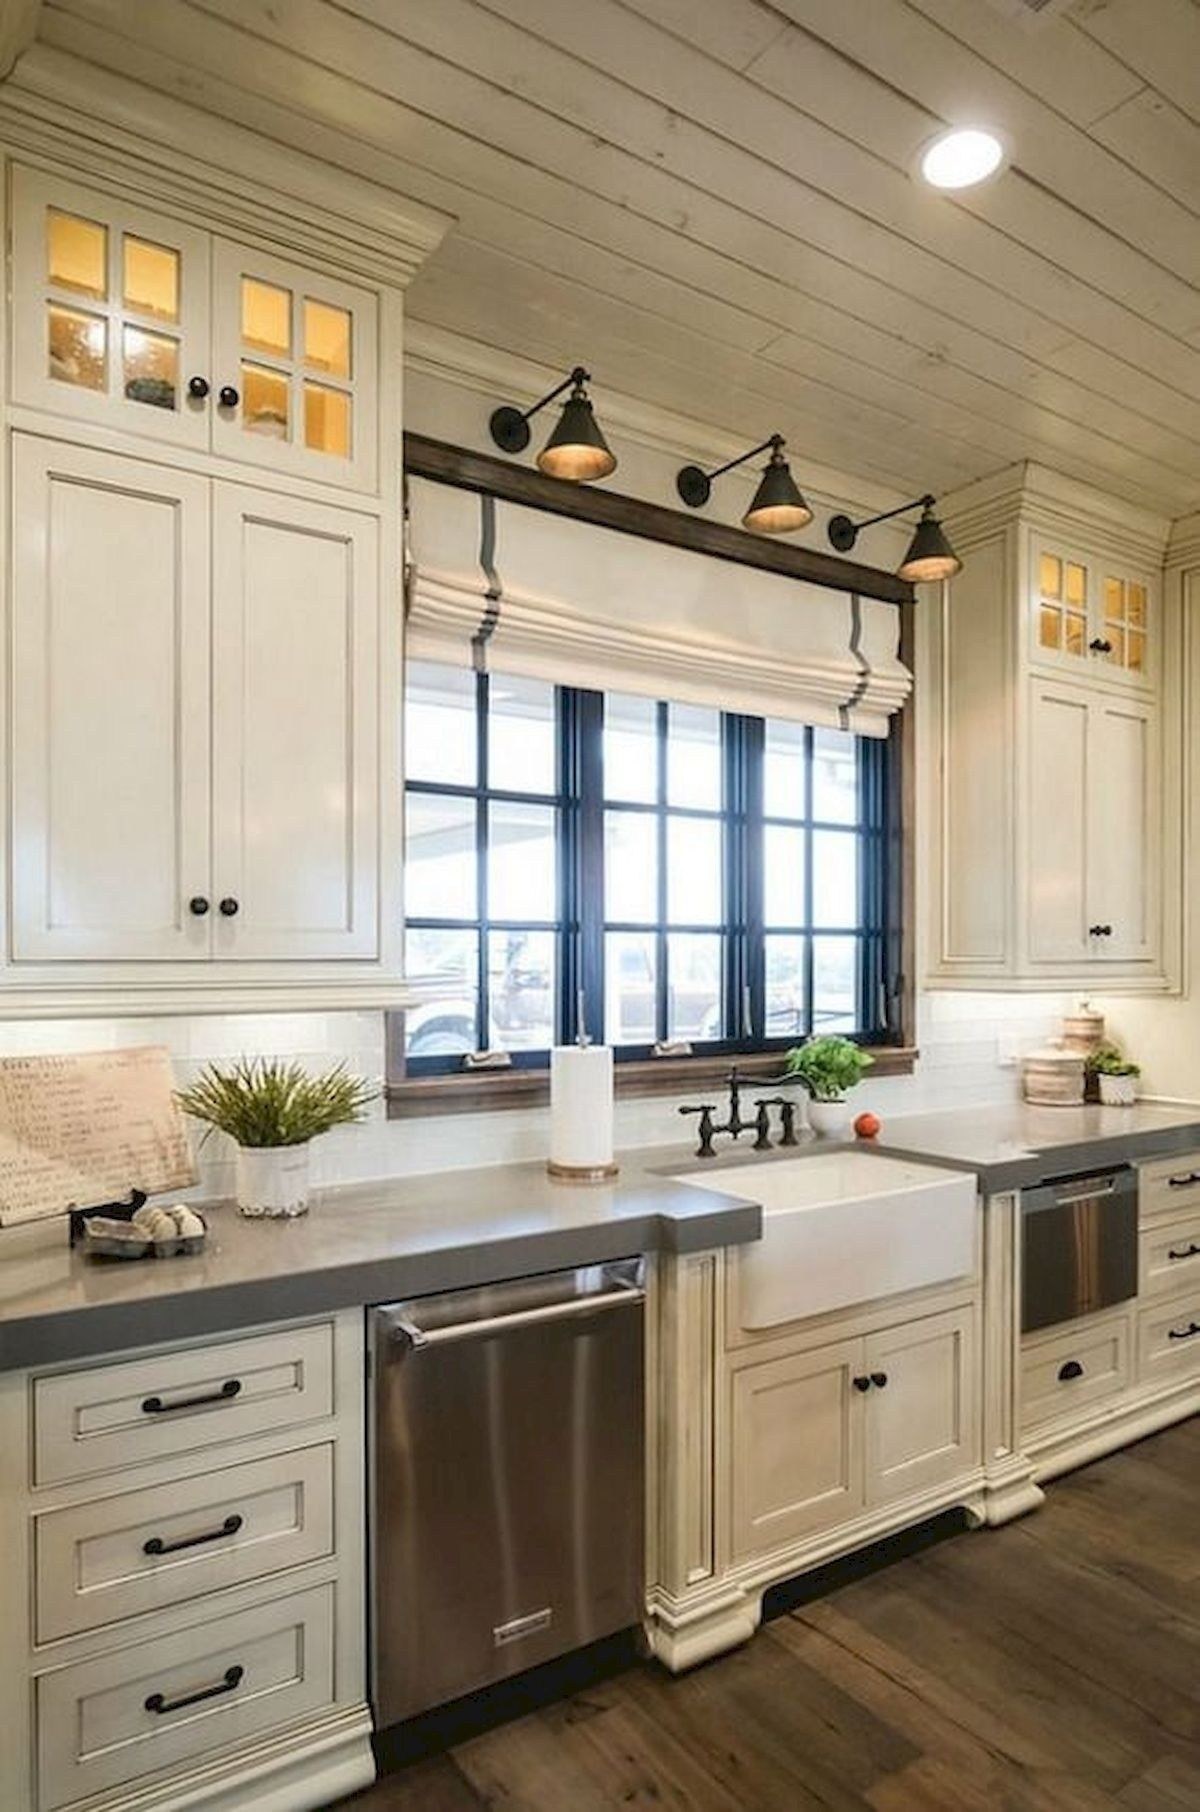 40 Awesome Farmhouse Kitchen Cabinets Design Ideas And Decorations 36 In 2020 Modern Farmhouse Kitchens Rustic Kitchen Cabinets Farmhouse Kitchen Decor